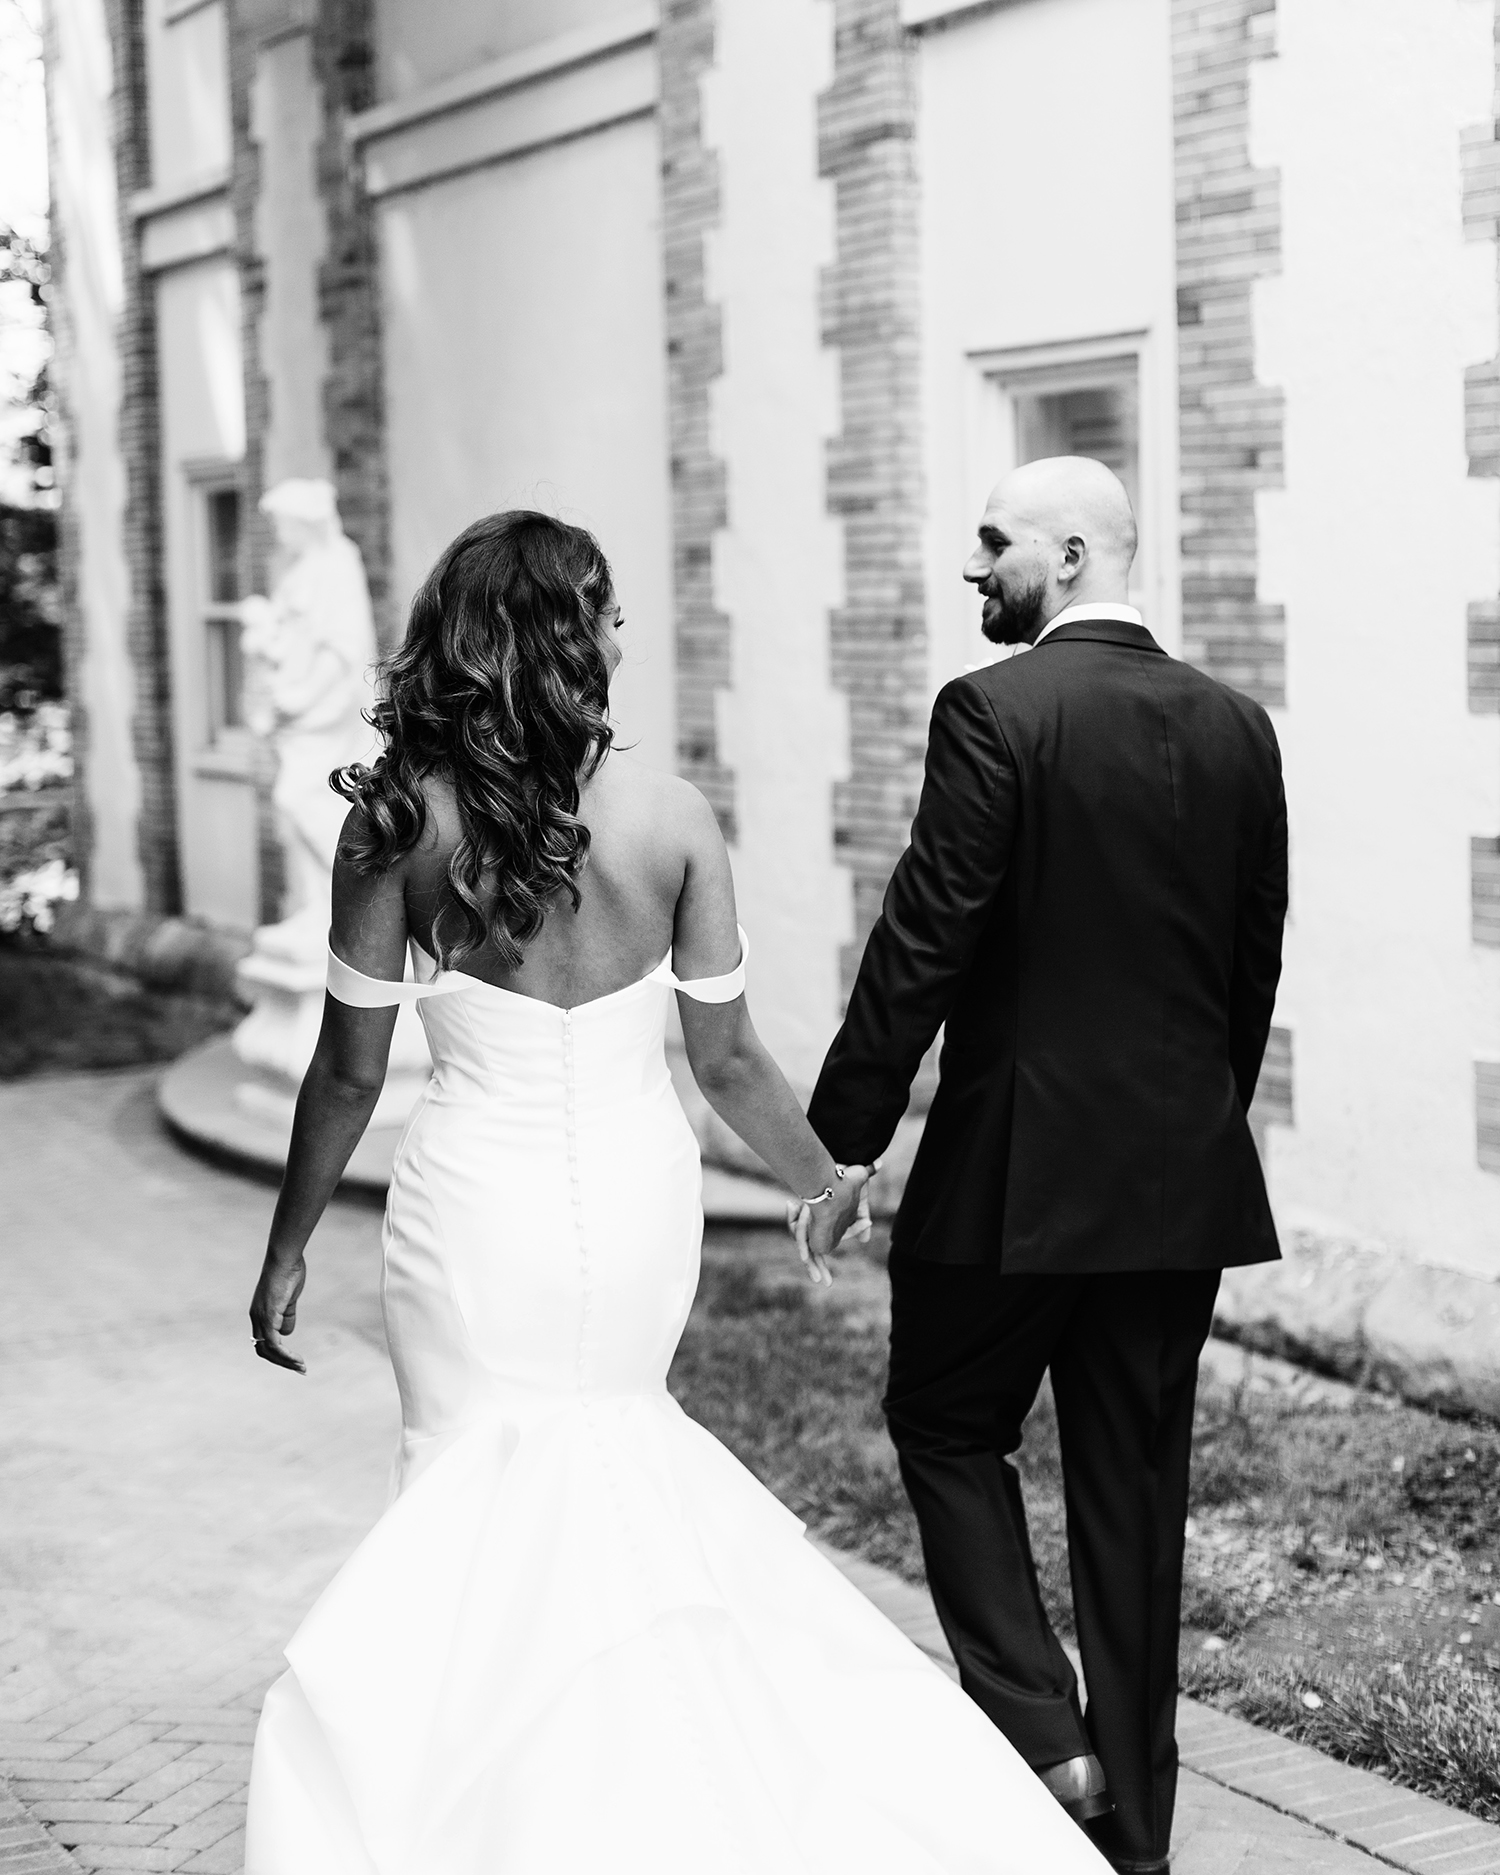 bryanna nick wedding couple bride groom holding hands